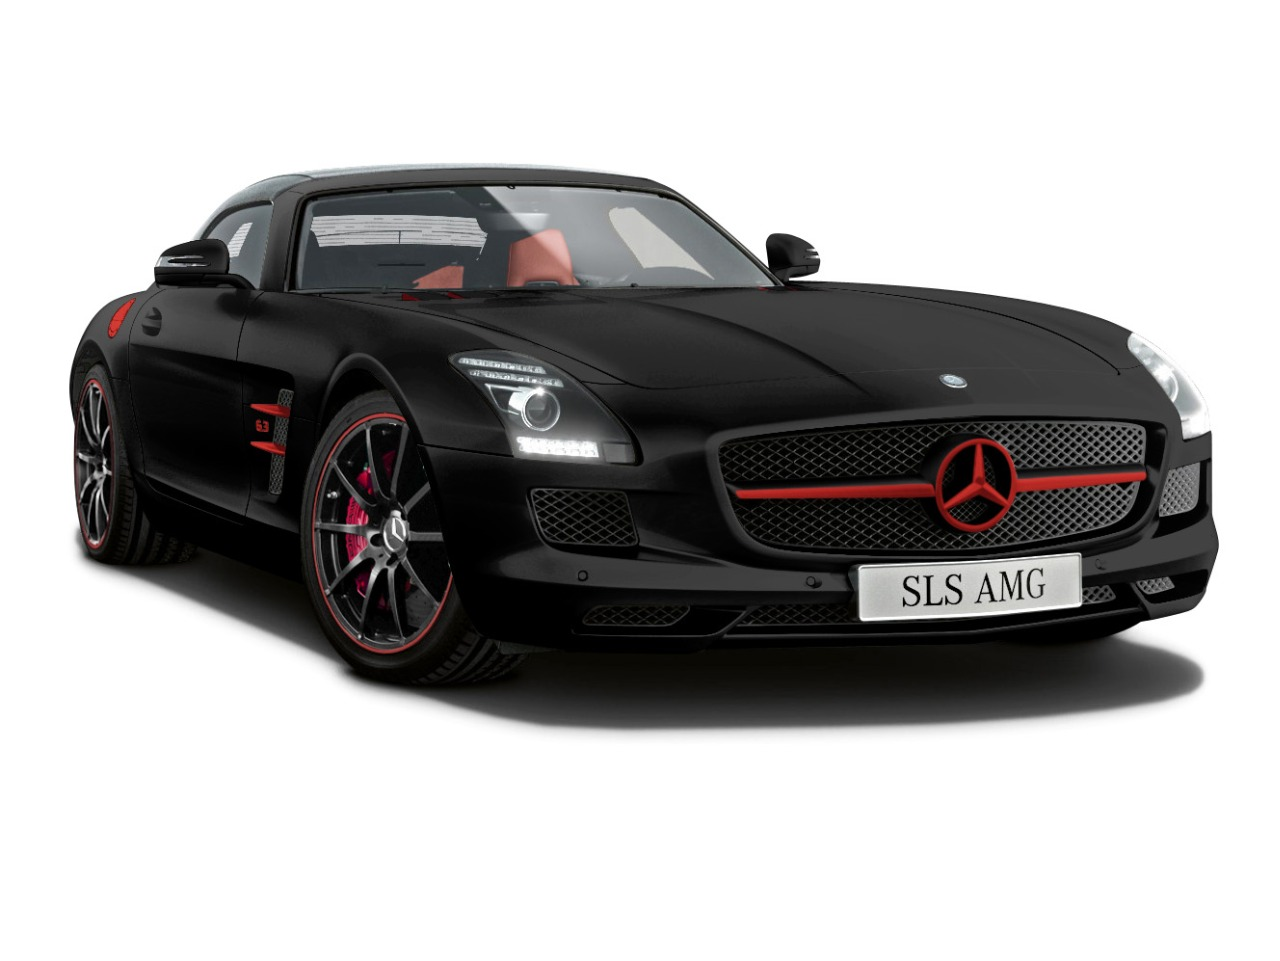 mercedes sls amg matt edition 2012 afbeeldingen. Black Bedroom Furniture Sets. Home Design Ideas